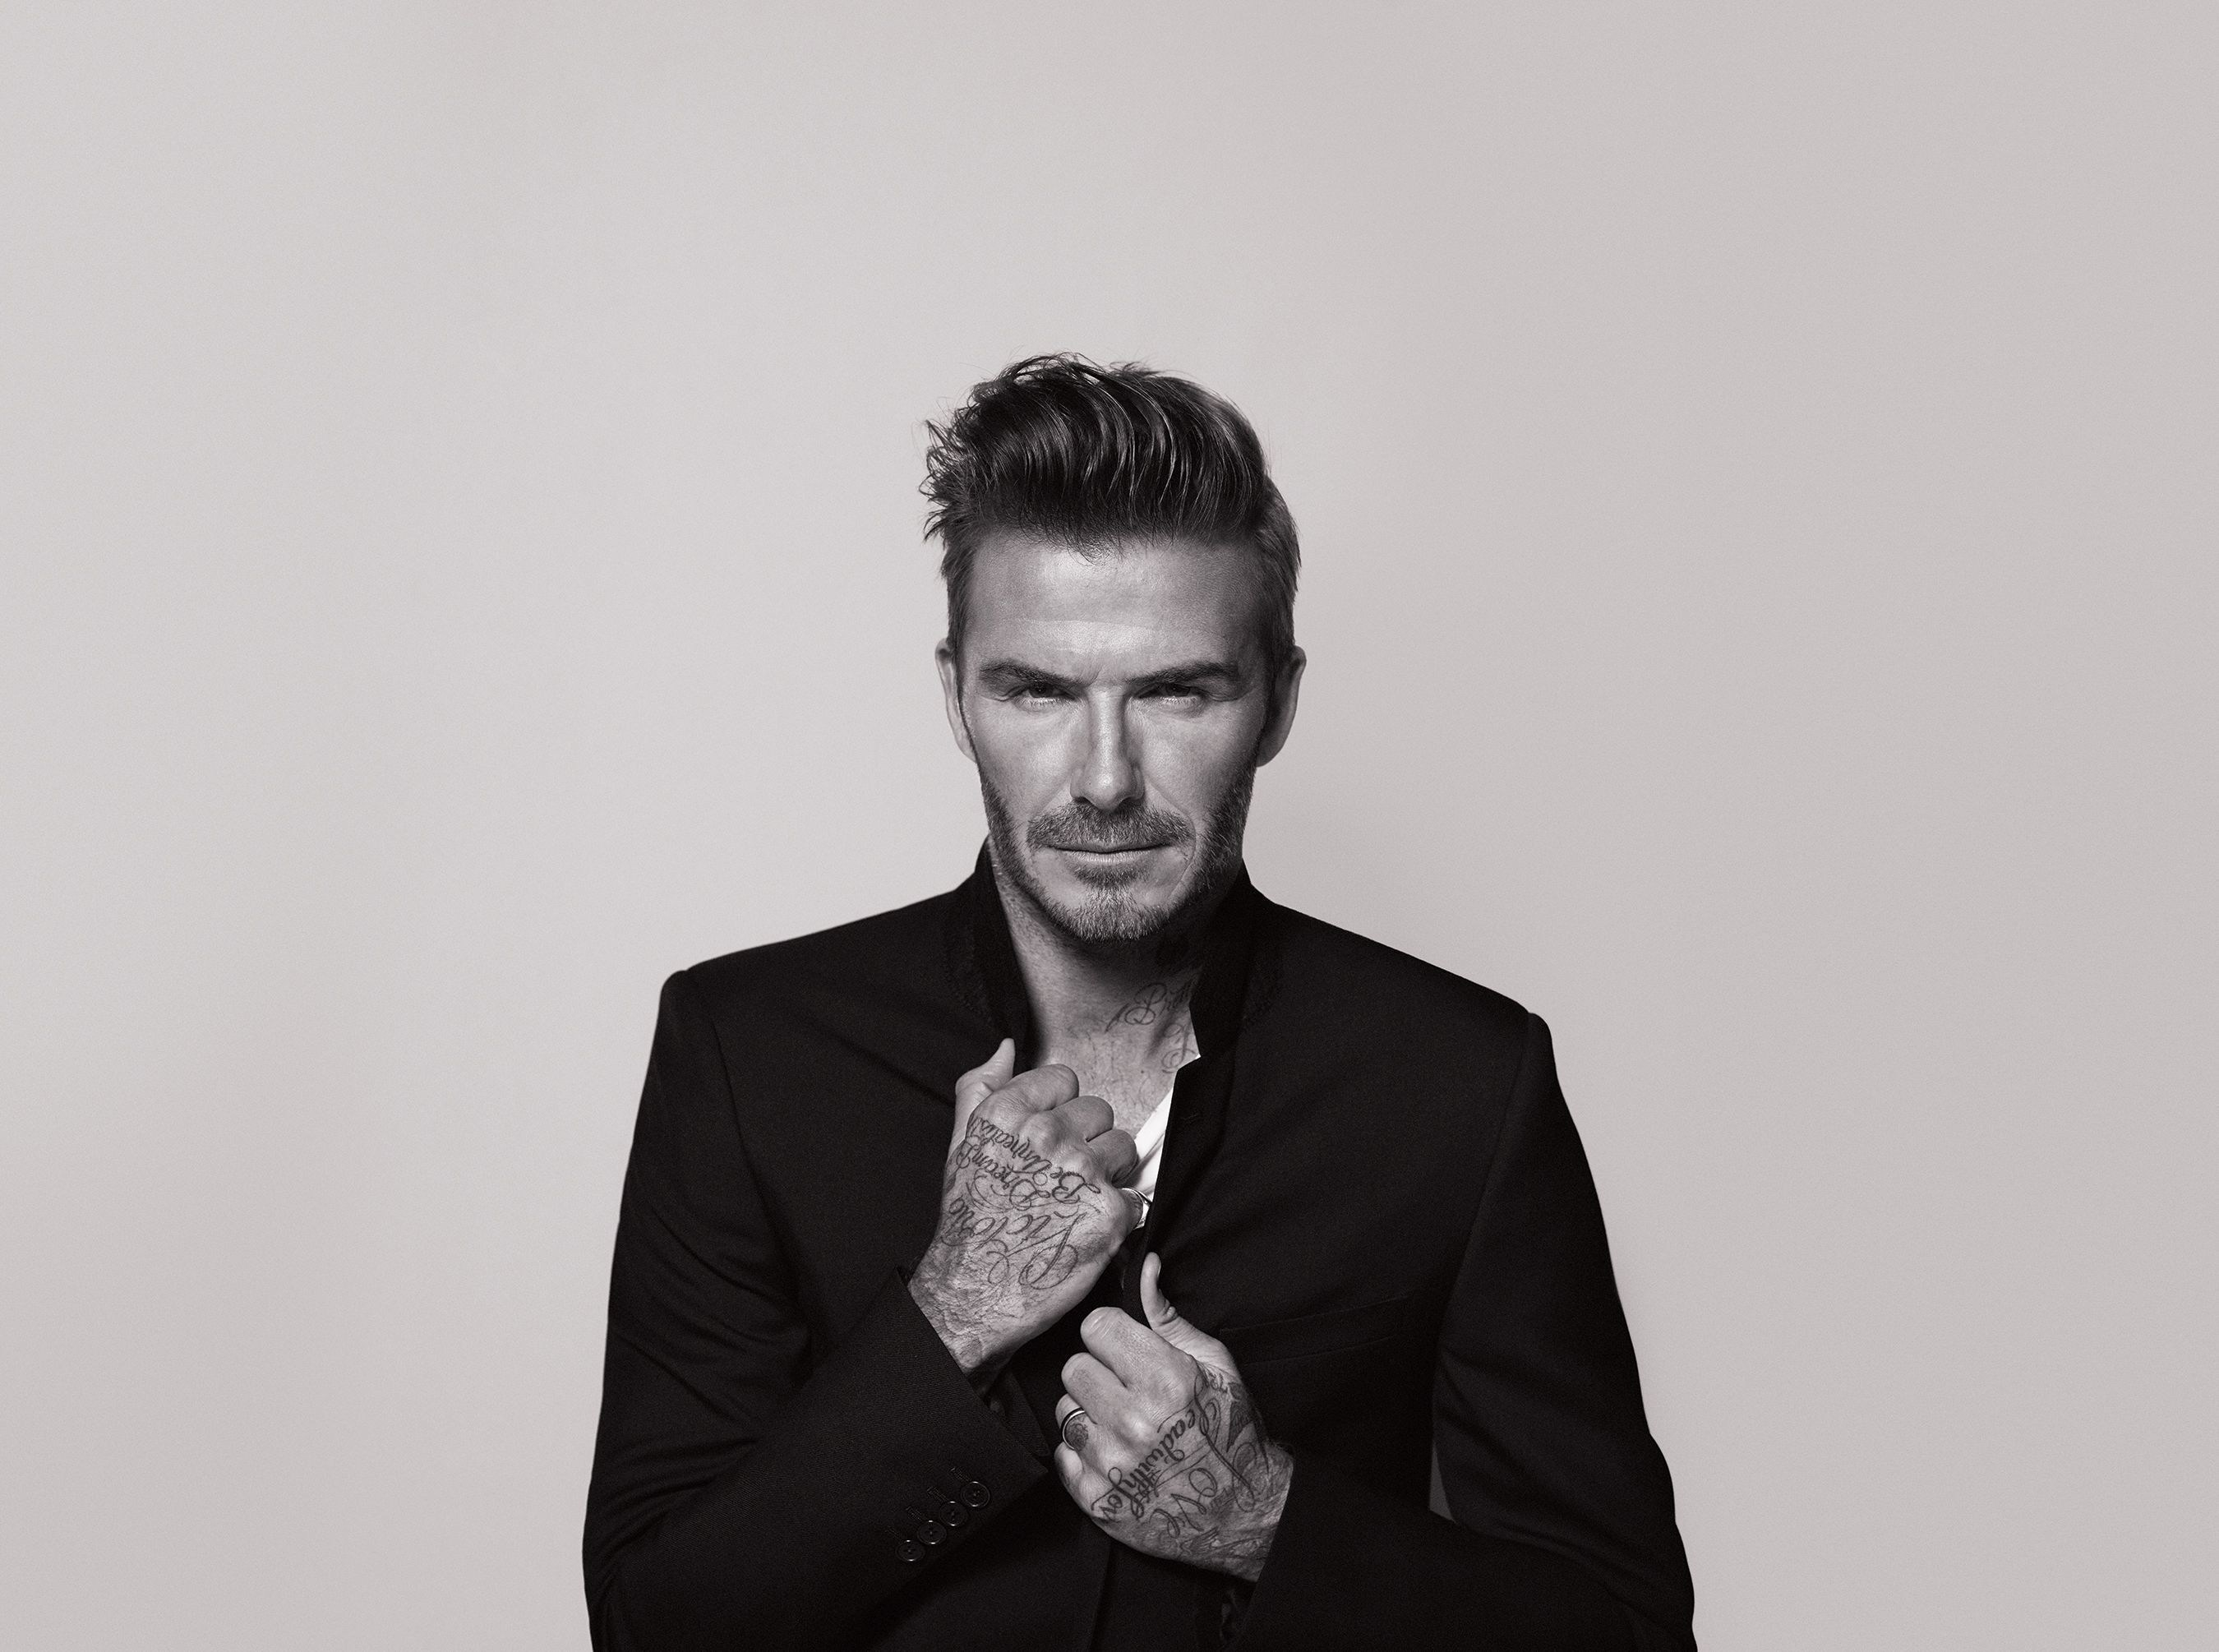 Biotherm Homme and David Beckham Open New Chapter of Their Collaboration With New Skincare Campaign